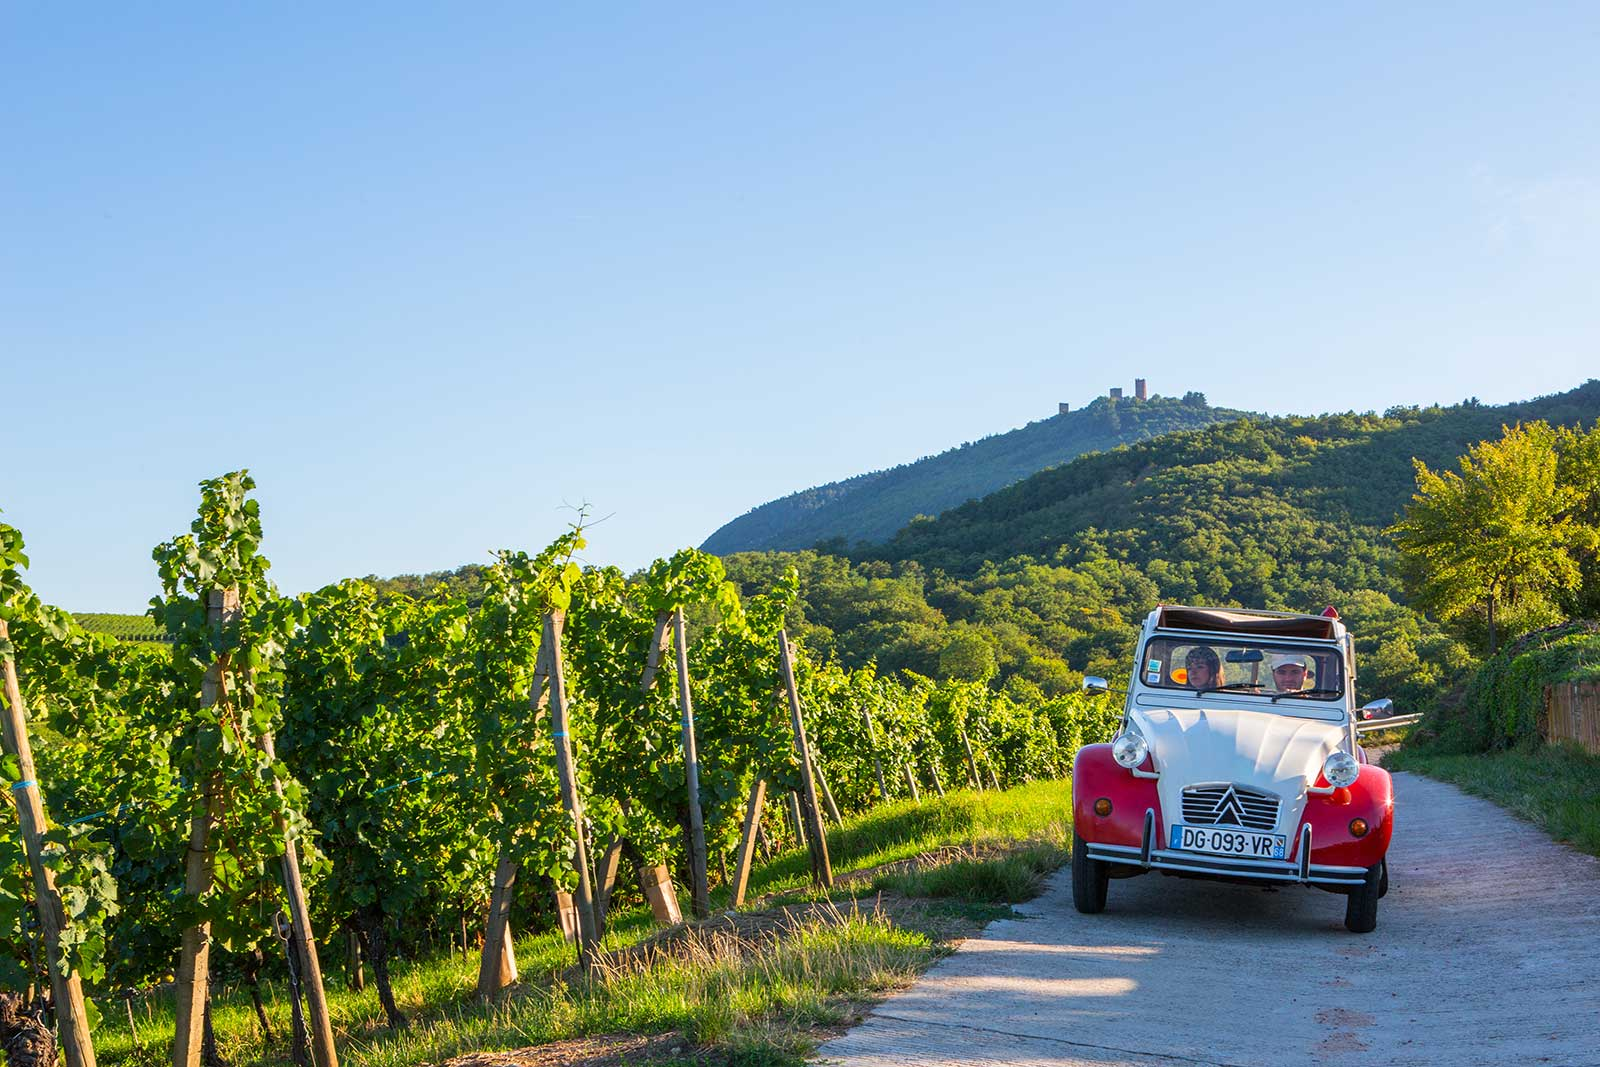 Maxime and Sophie drive an antique Citroen through the vineyards because ... why not? (Promotional photo provided by ©Barmès-Buecher)